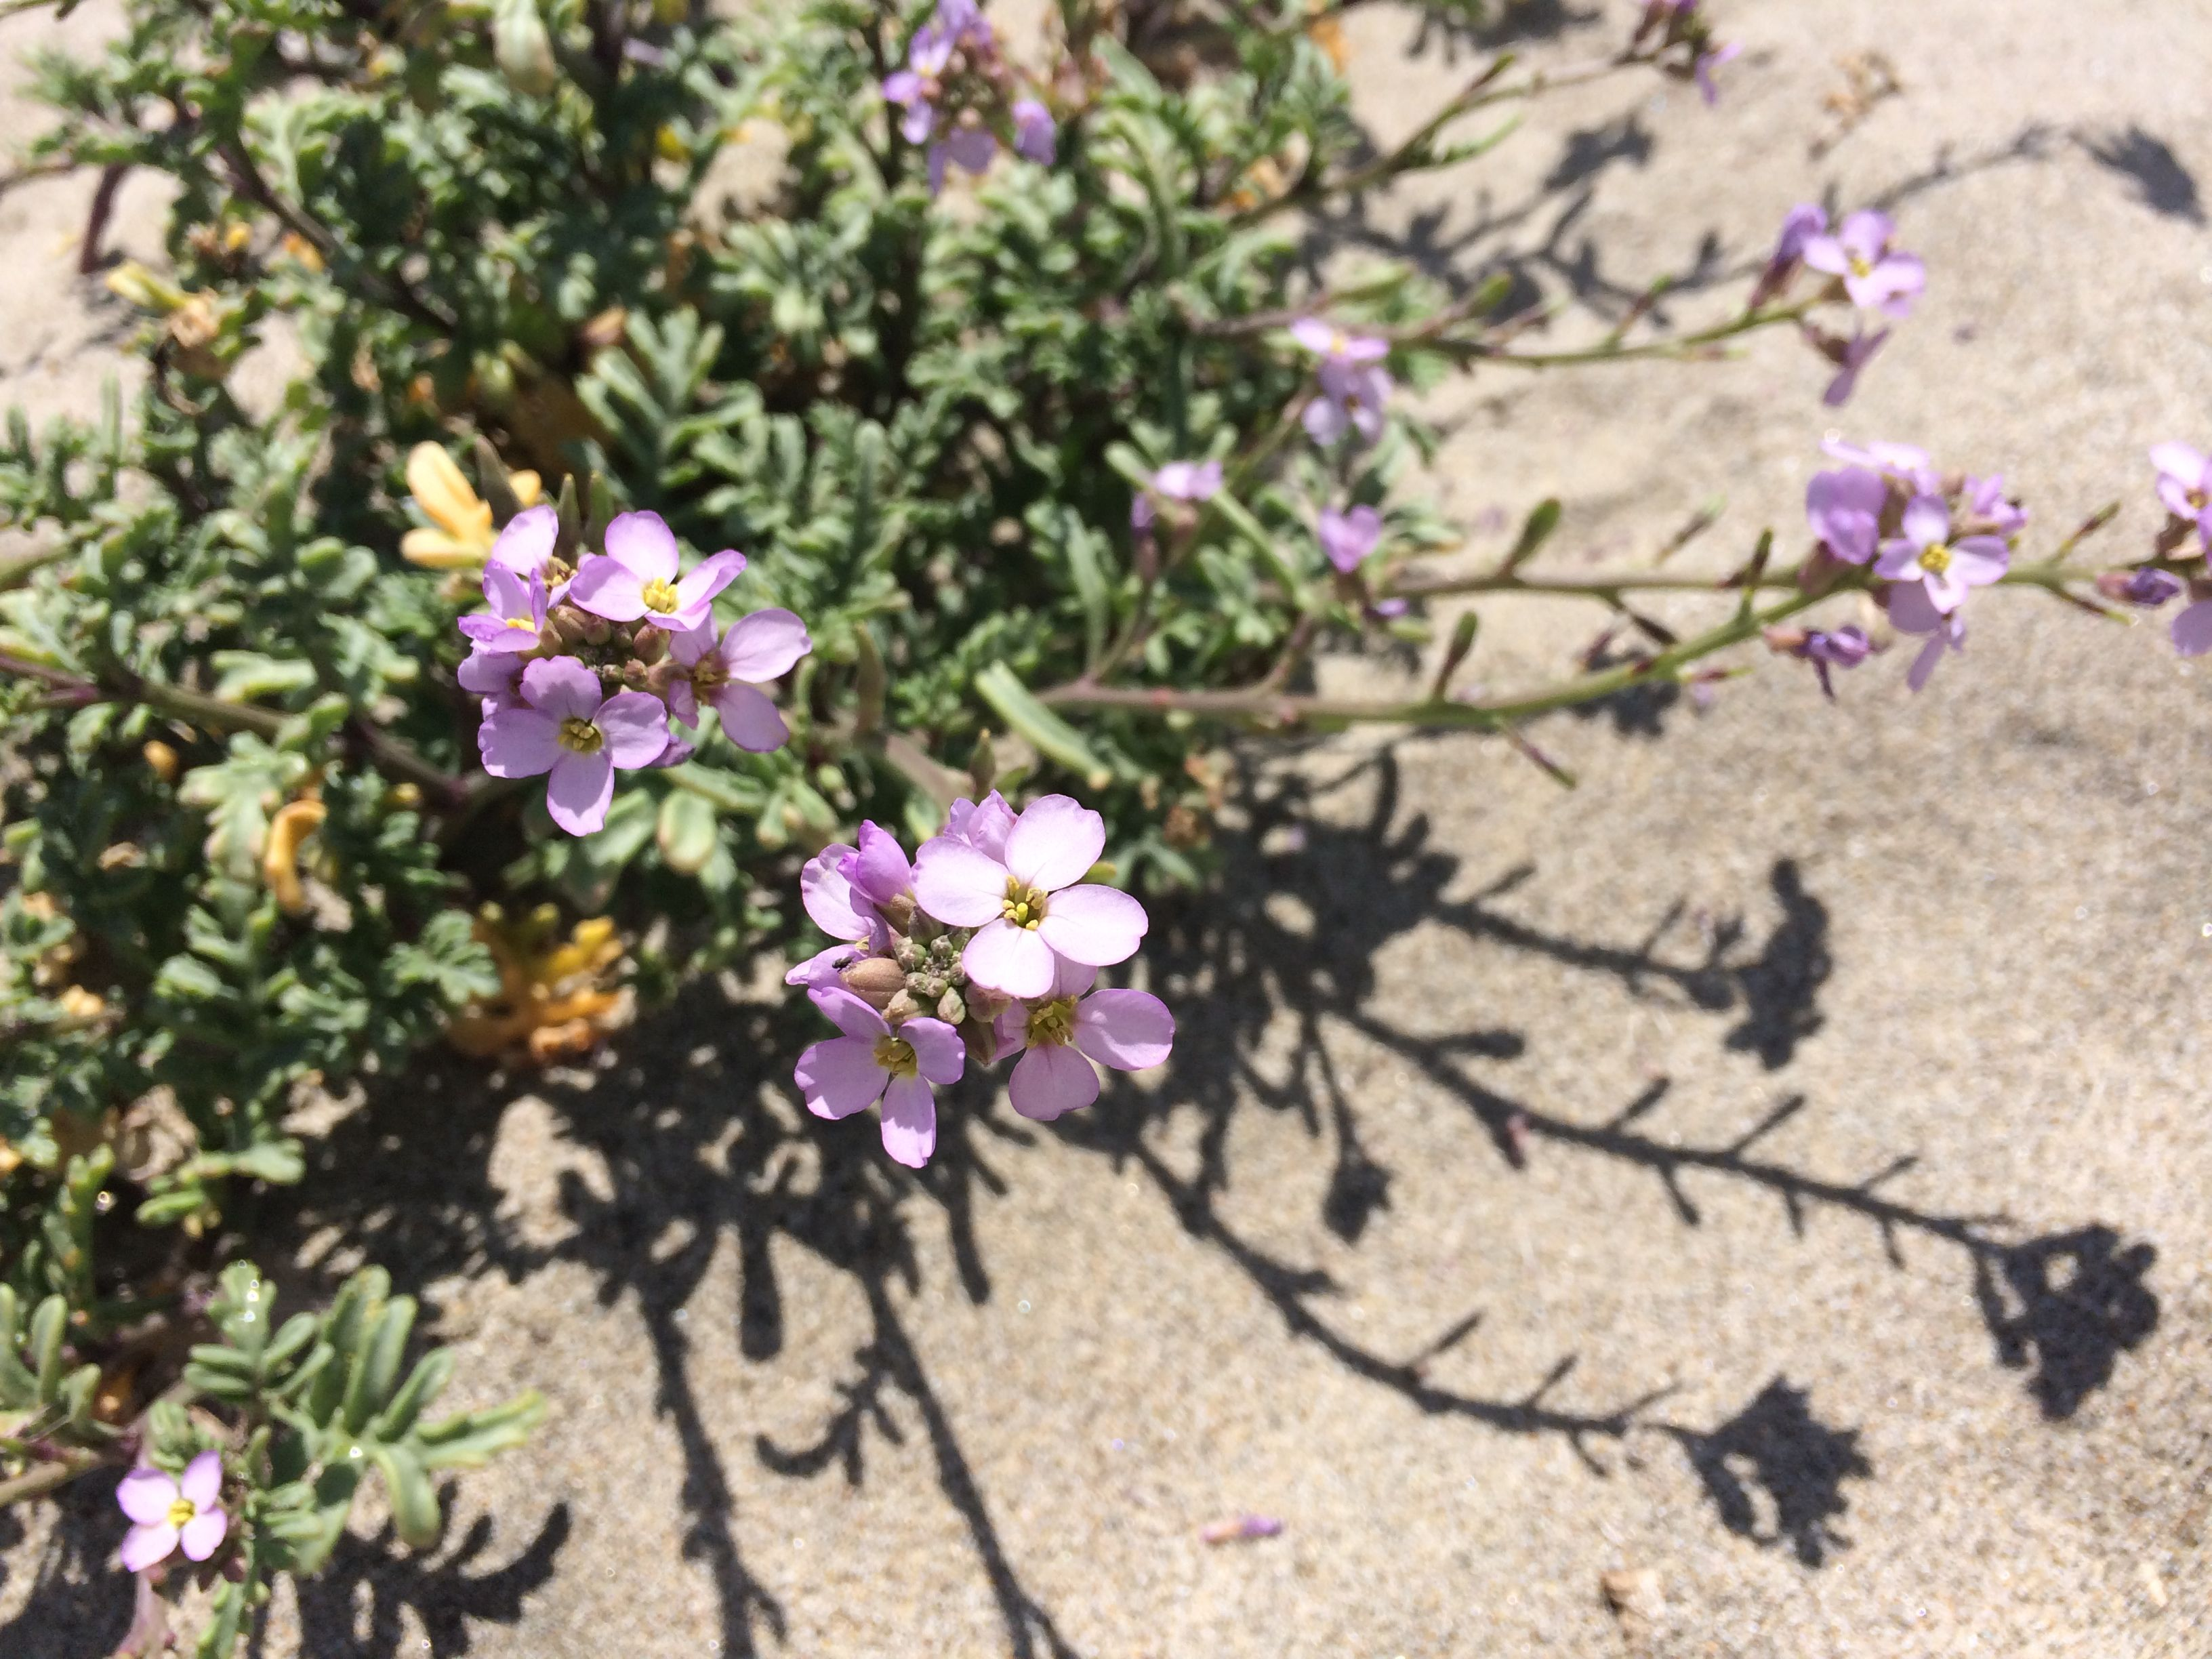 Pretty pink flowers that grow in the sand!